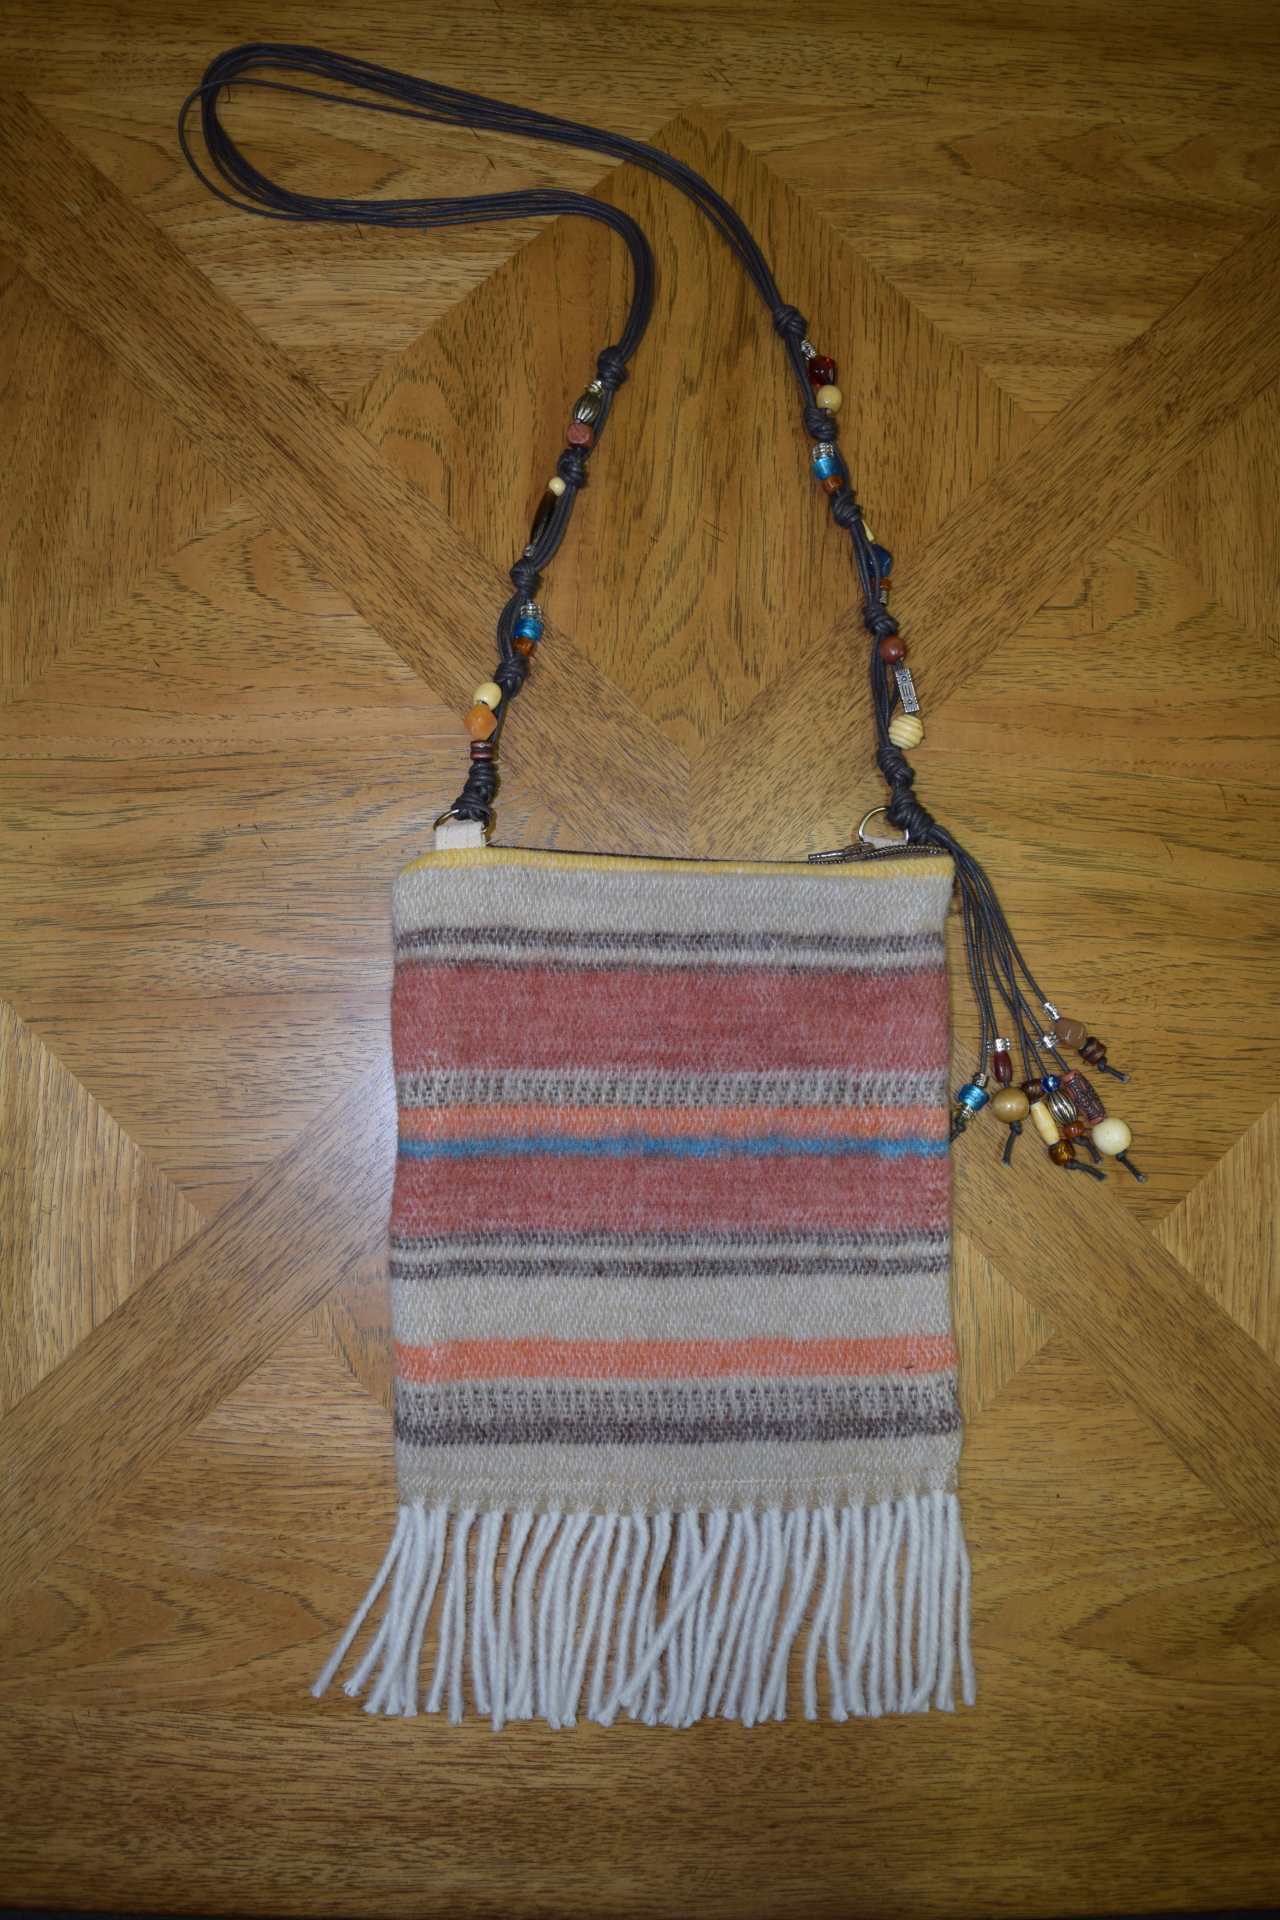 #B05 ARAPAHOE FRINGE BEADED STRAP ZIP BAG - $129.95